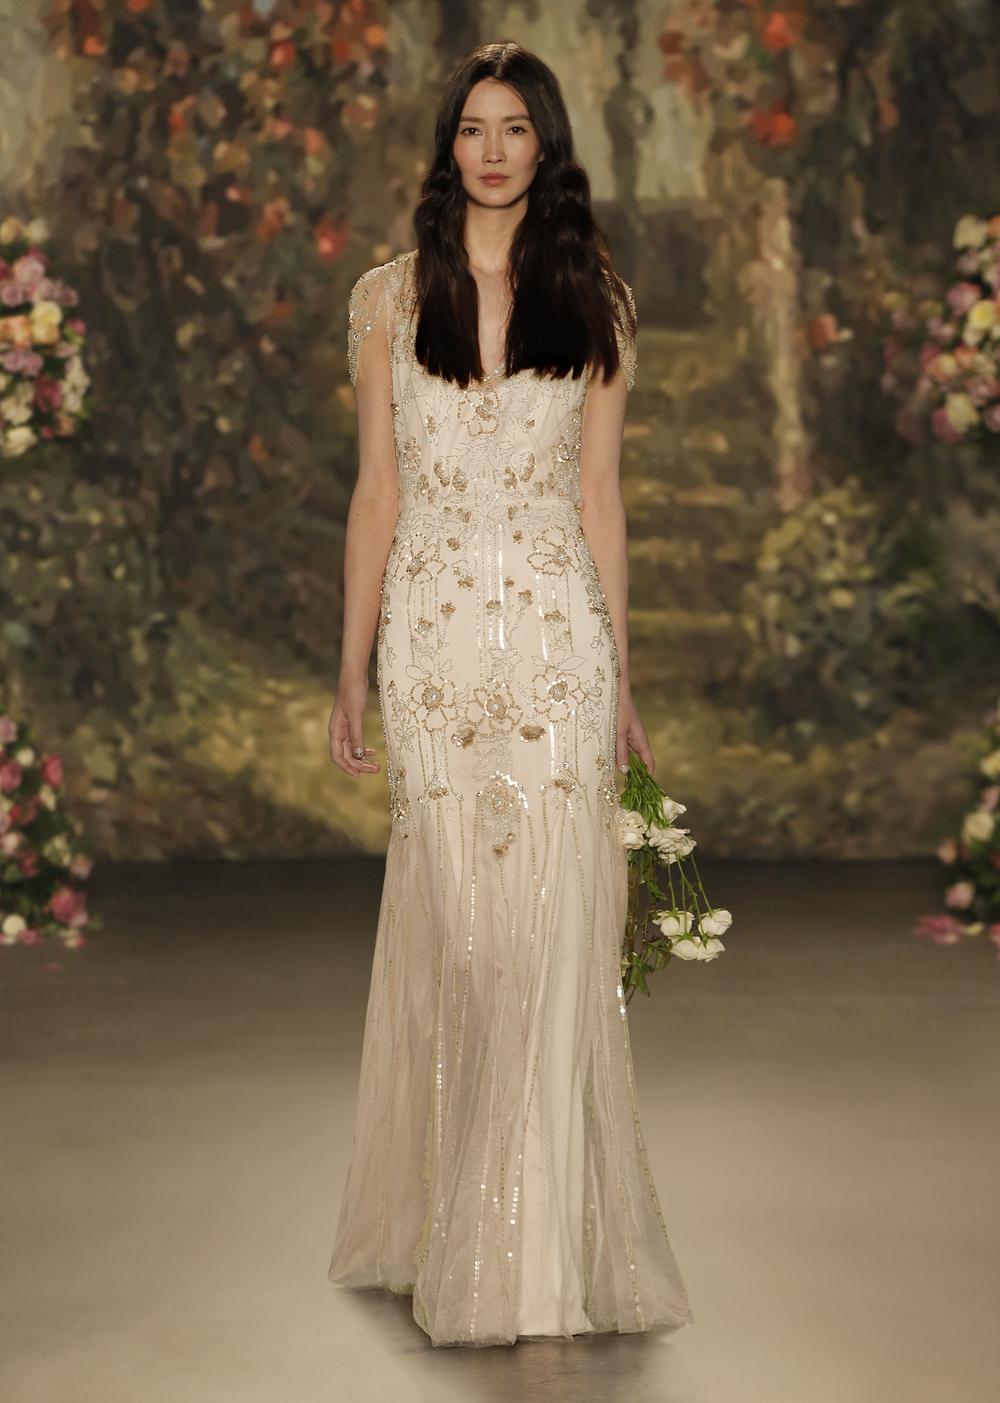 Mariana by Jenny Packham